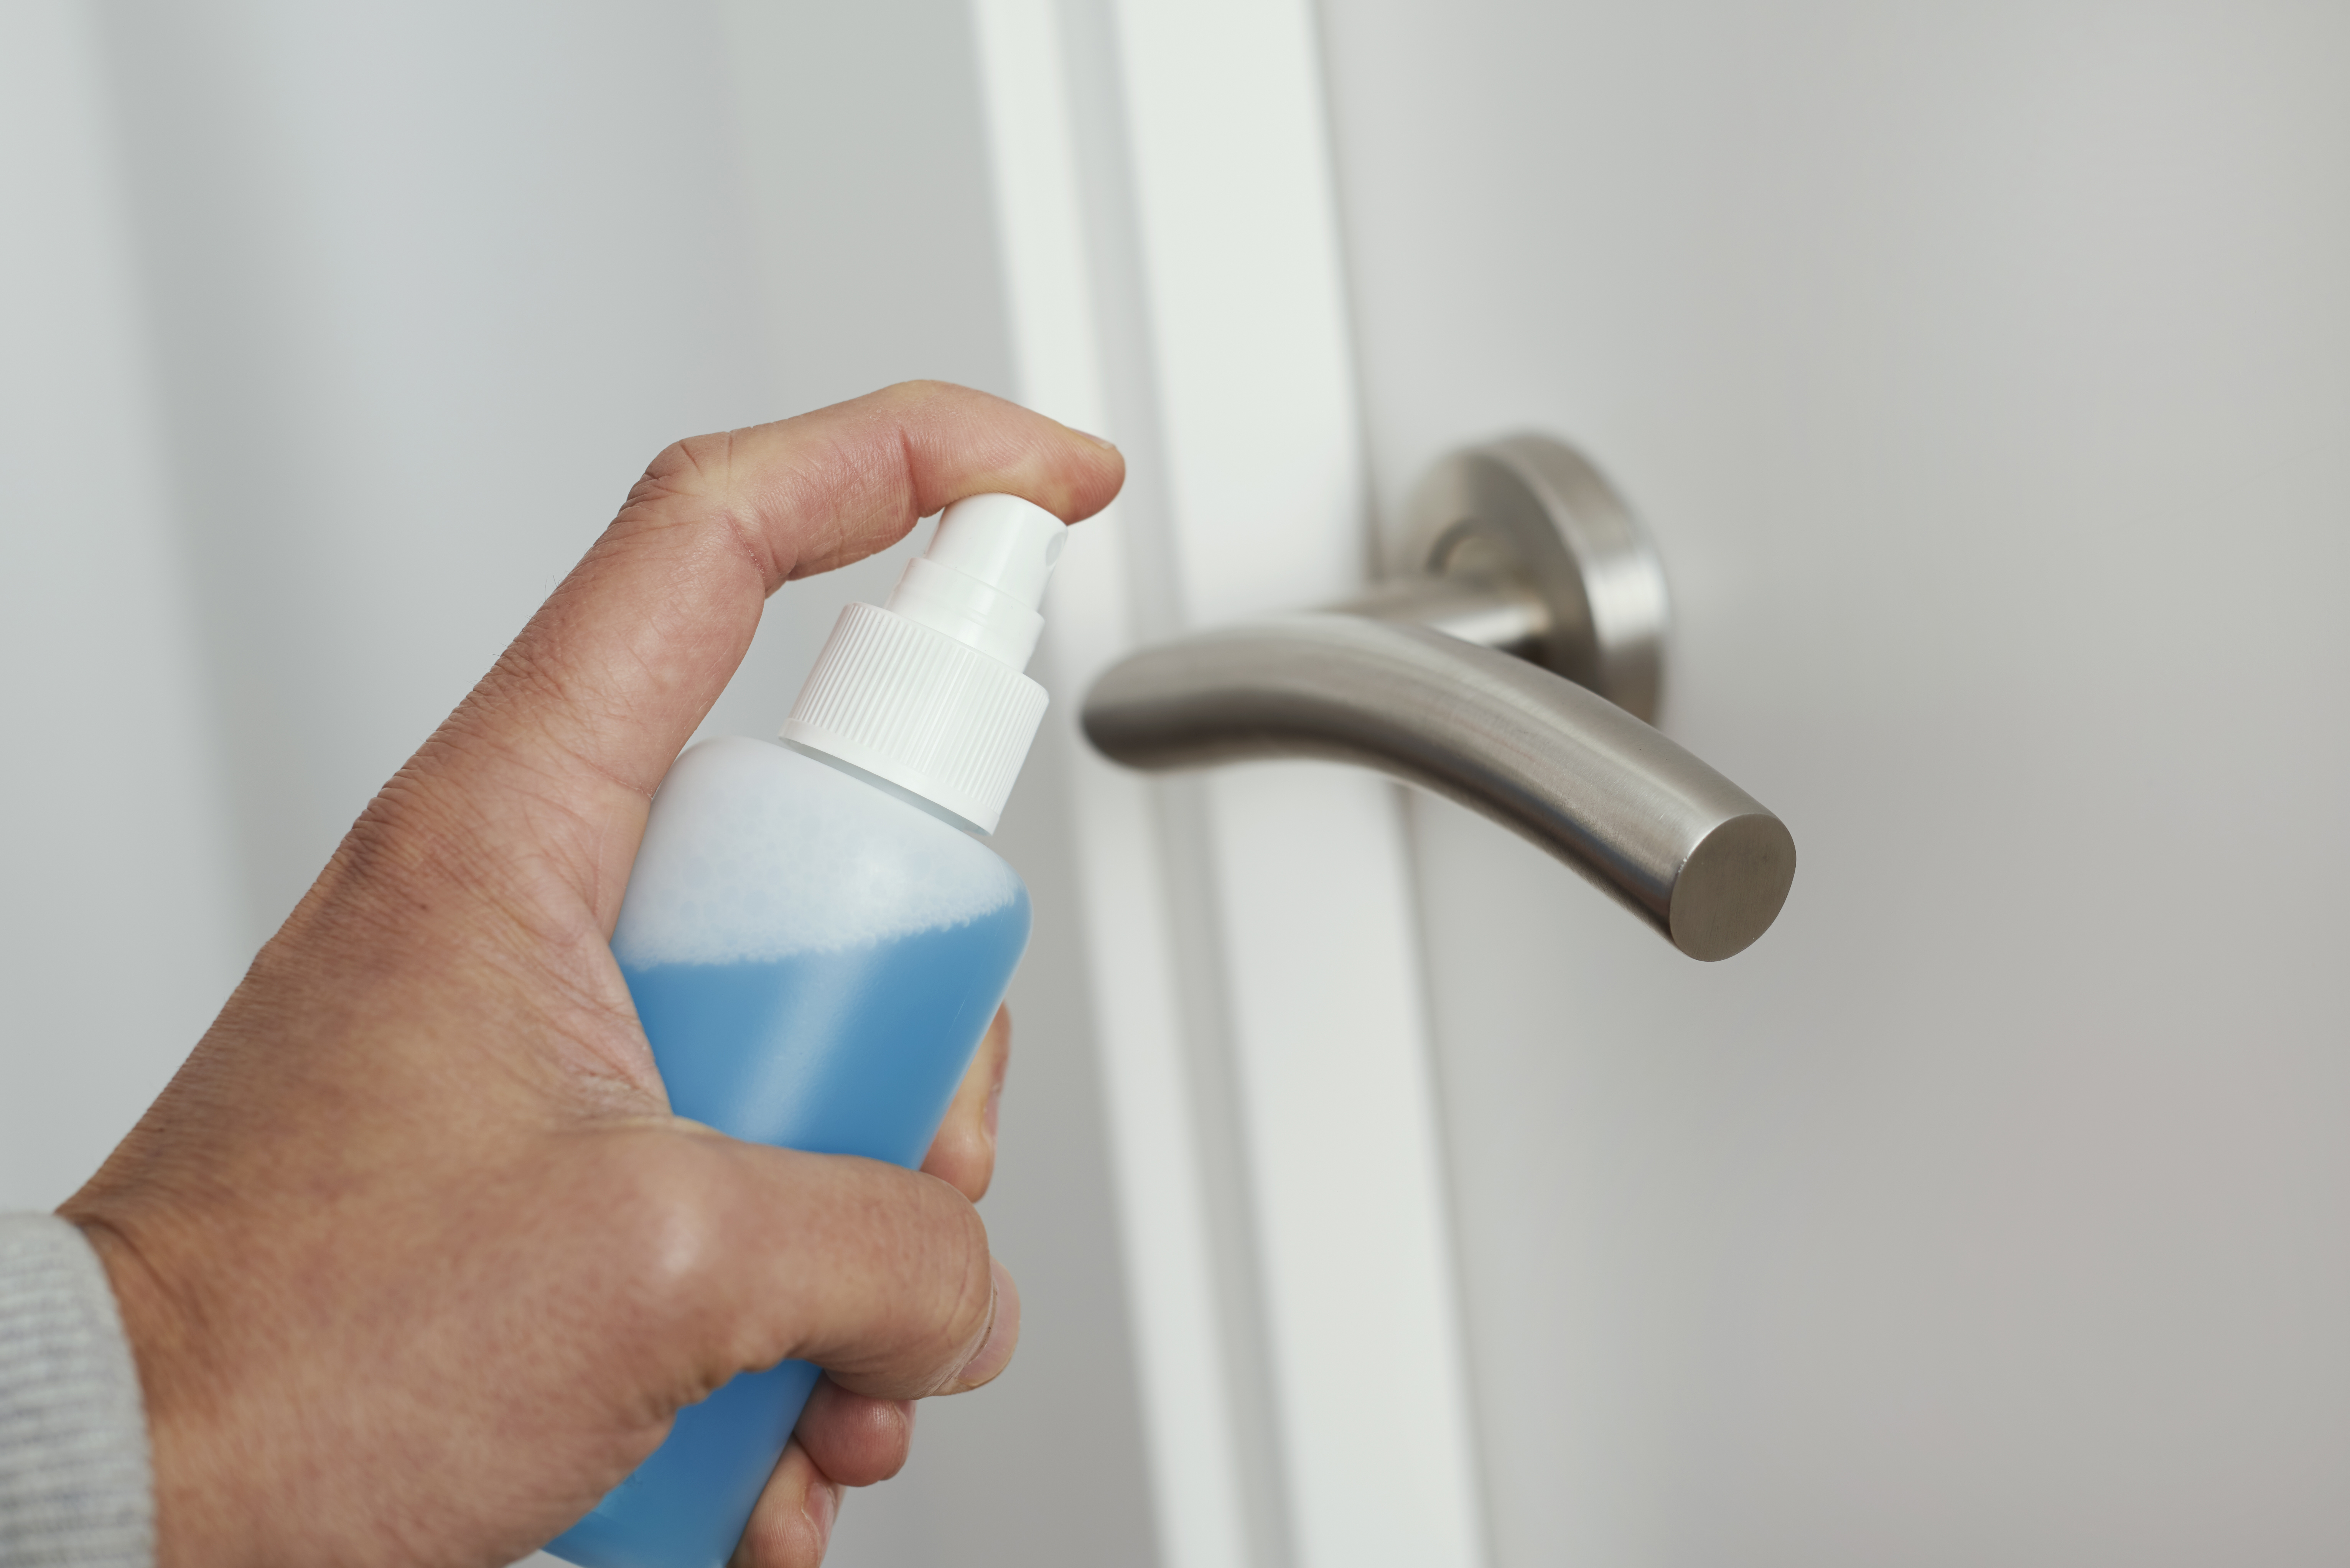 closeup of a caucasian man disinfecting the door handle by spraying a blue sanitizer from a bottle